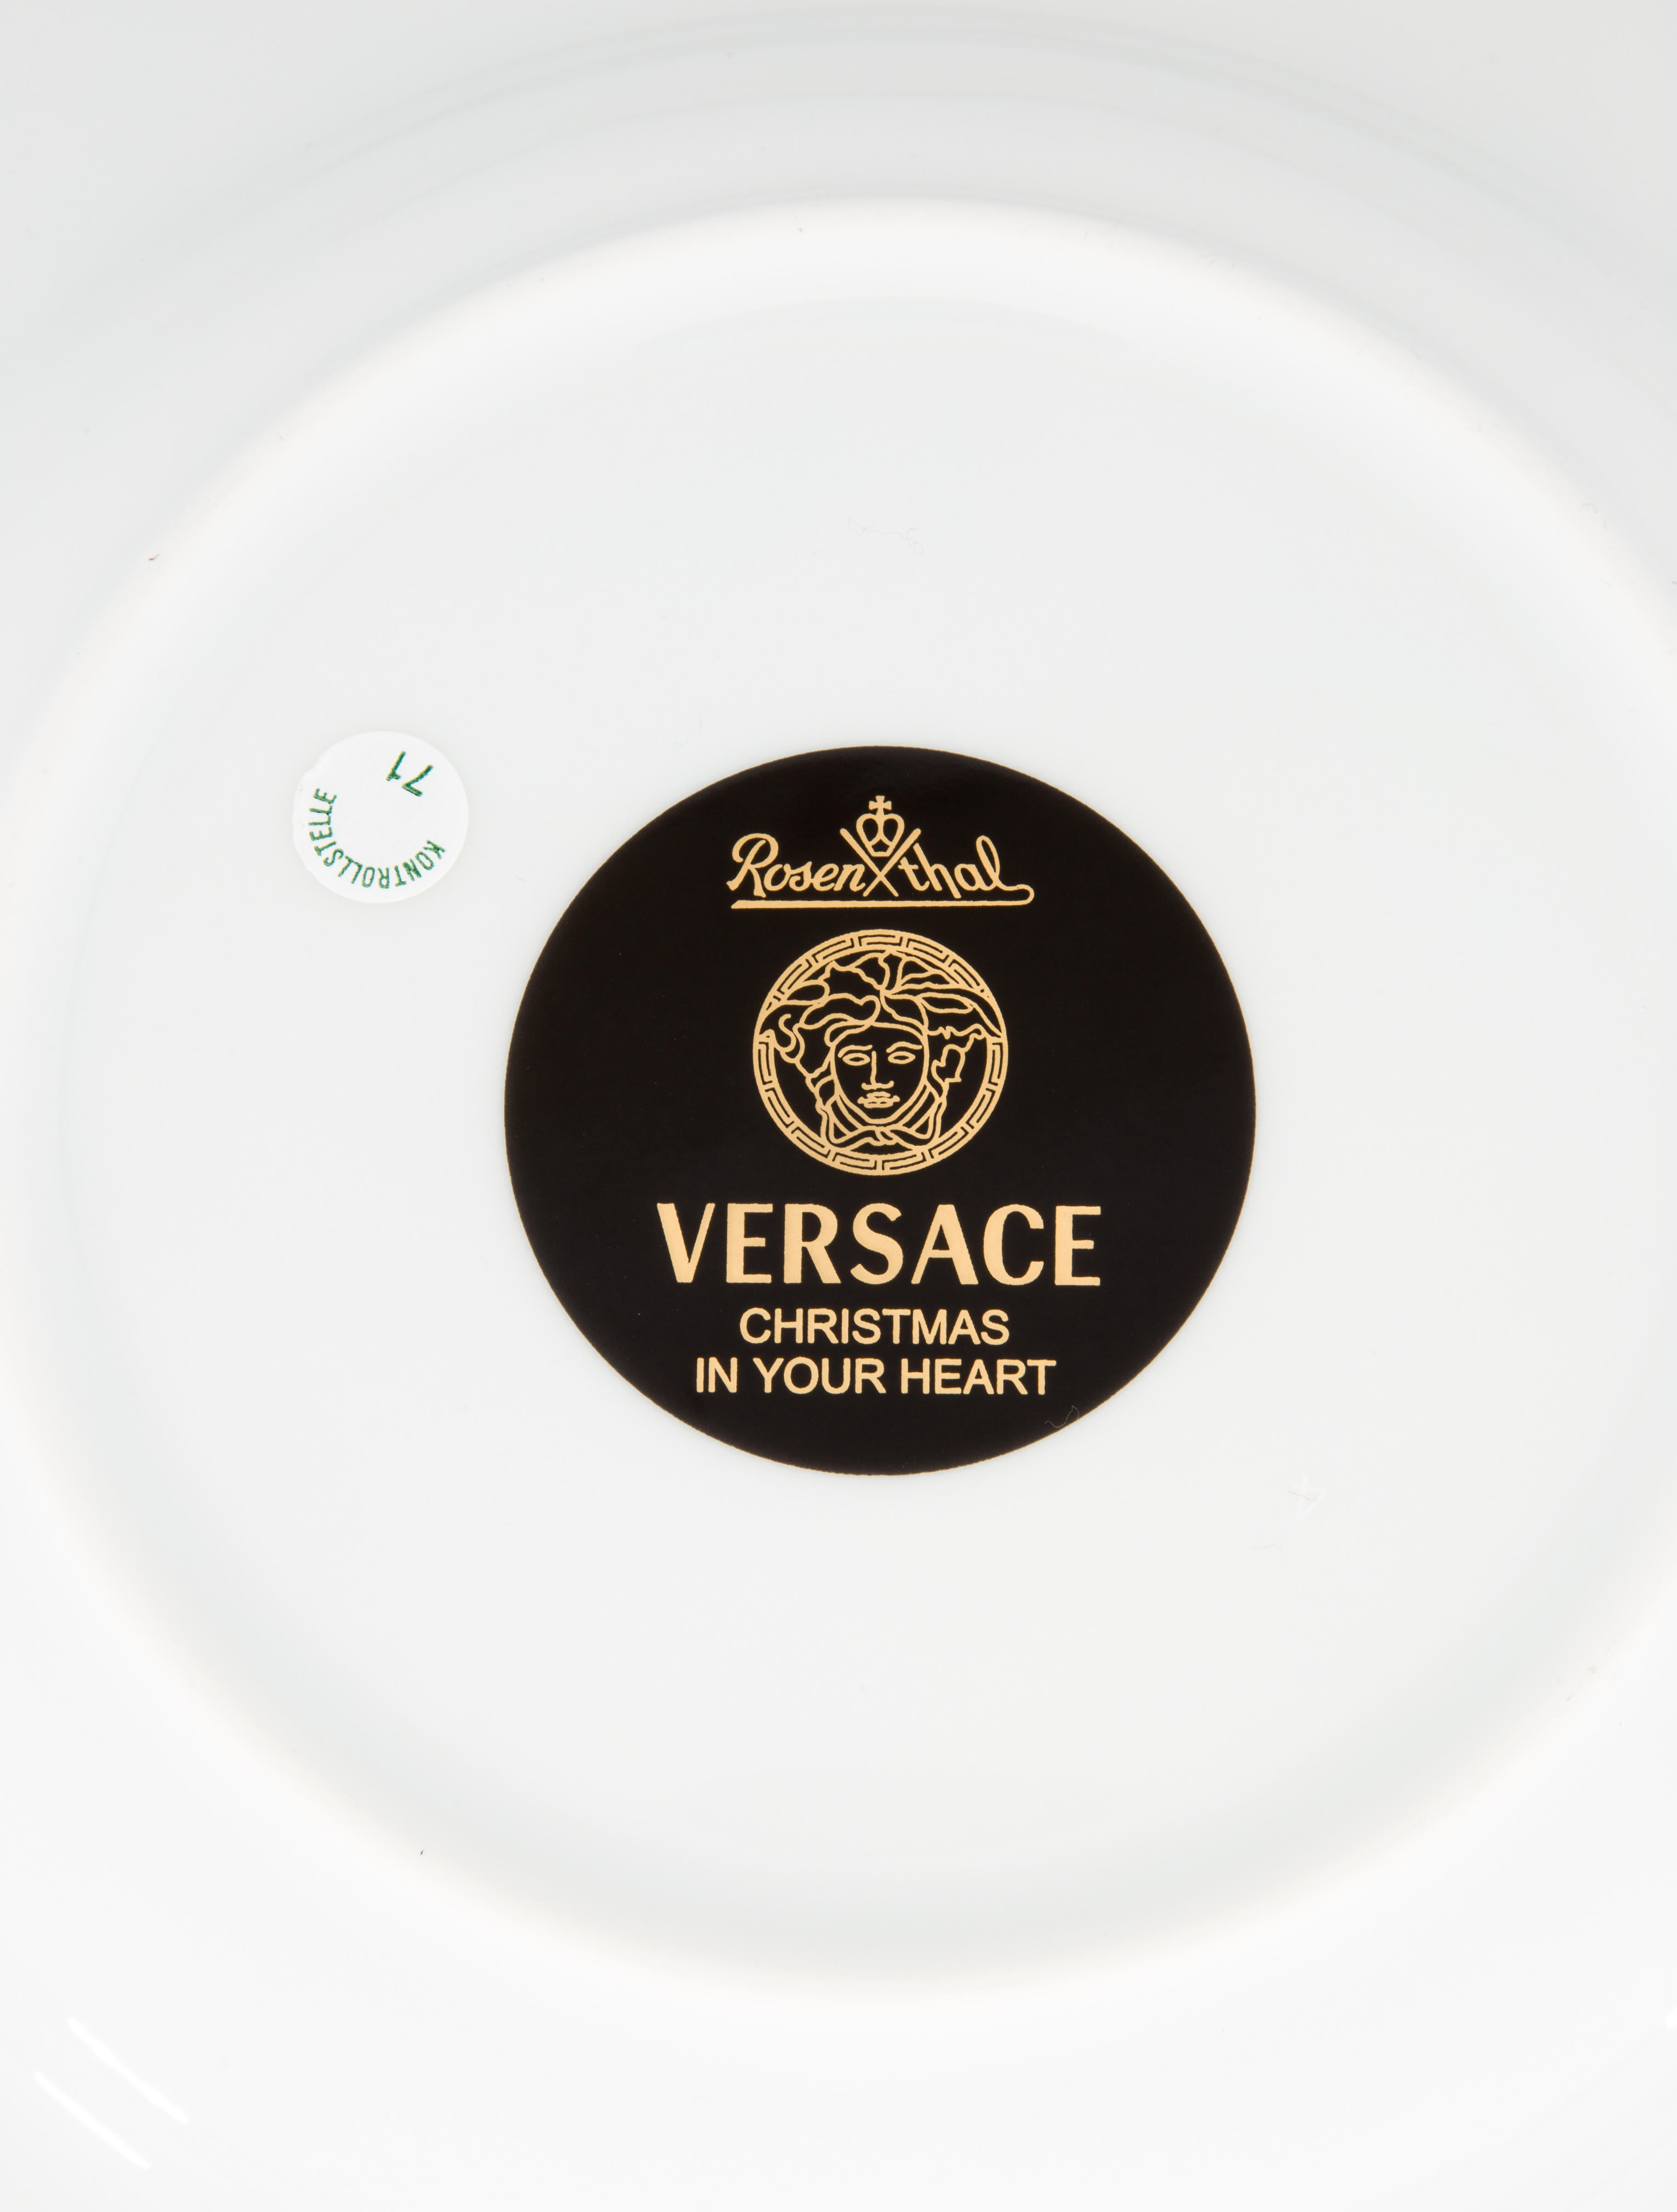 Rosenthal meets versace christmas in your heart soup plate